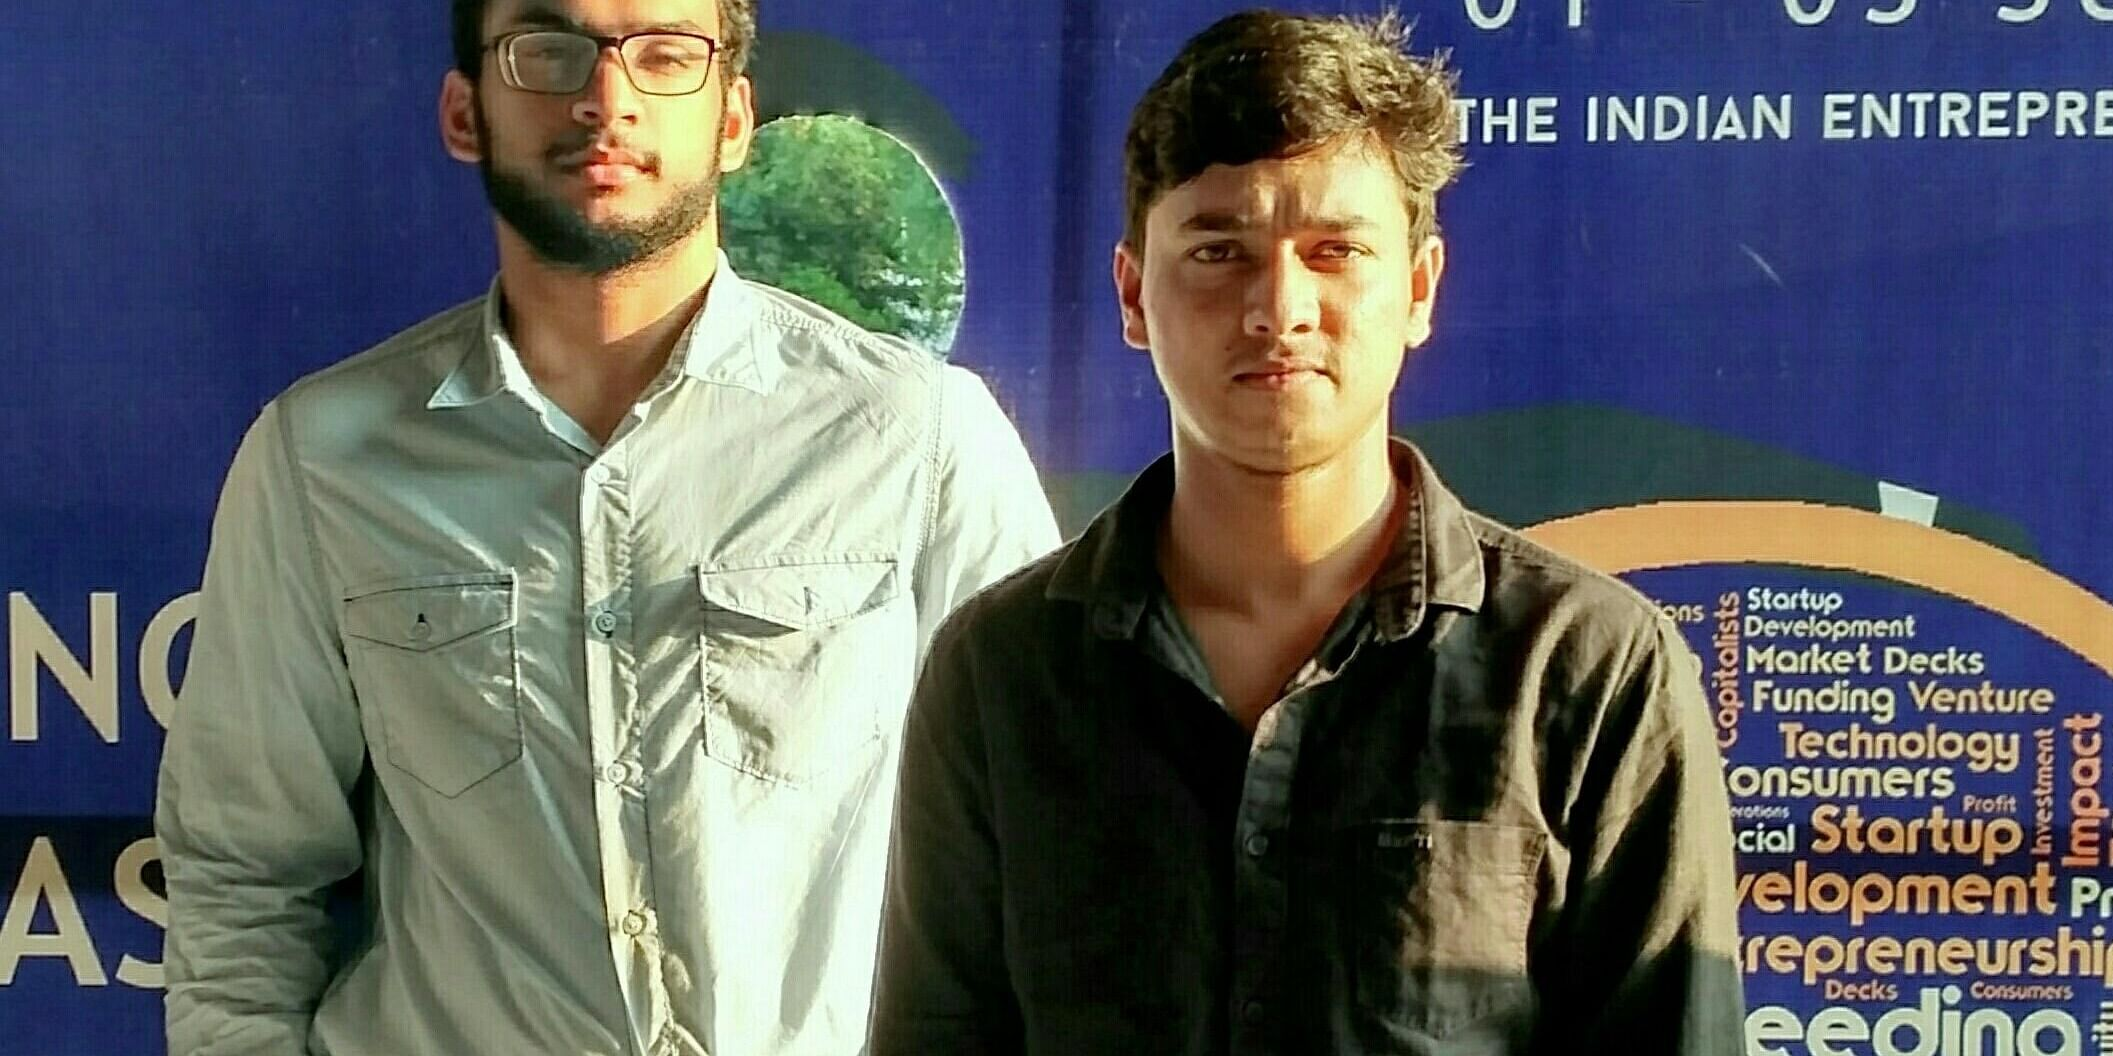 Tahir Ahmad (Right) -Founder of AMUNotes.com